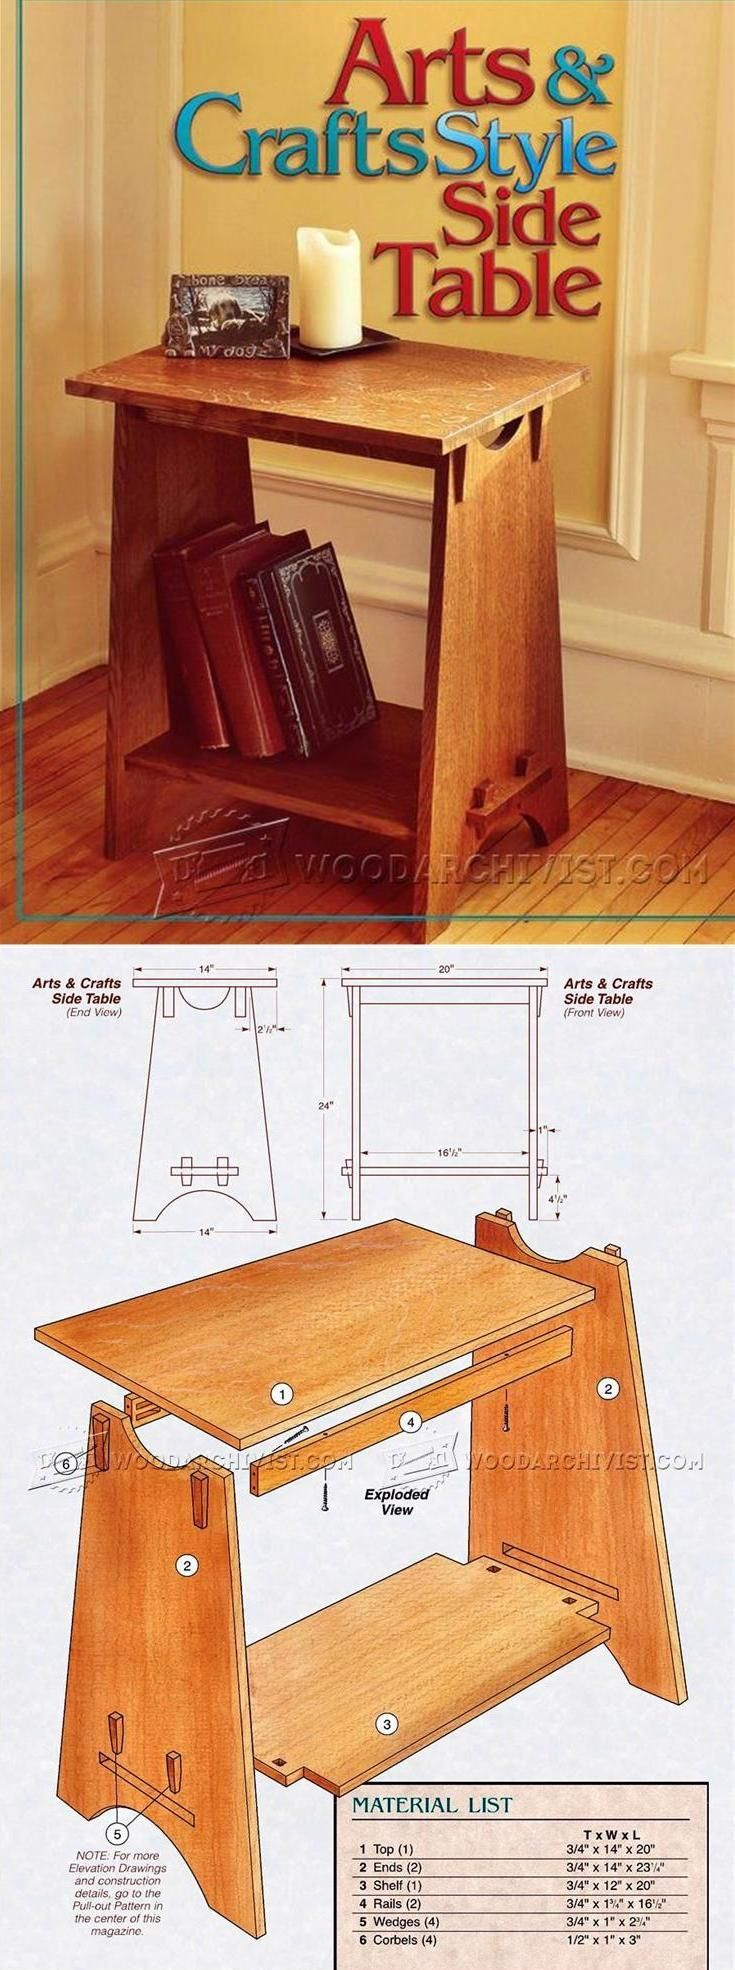 585 best mission craftsman furniture images on pinterest for Mission style end table plans